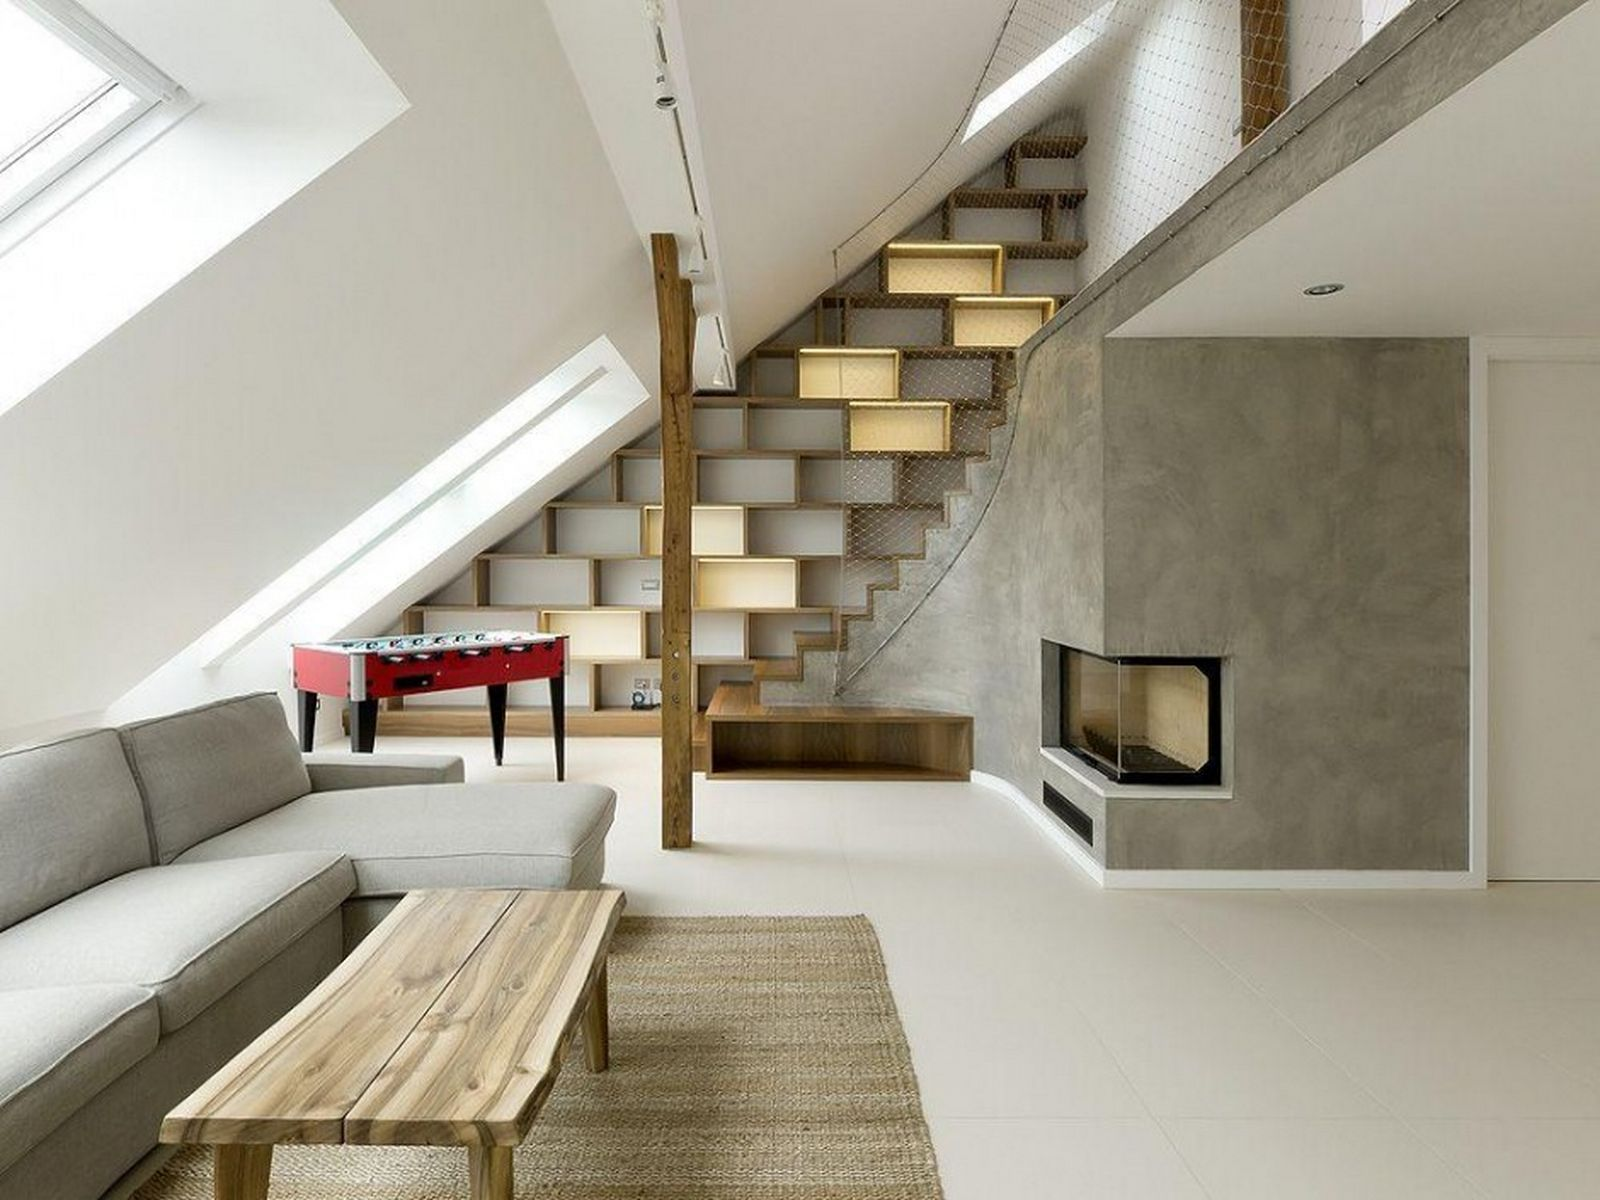 Loft bedroom layout ideas  Stairs storage  House  Pinterest  Loft Loft design and House design